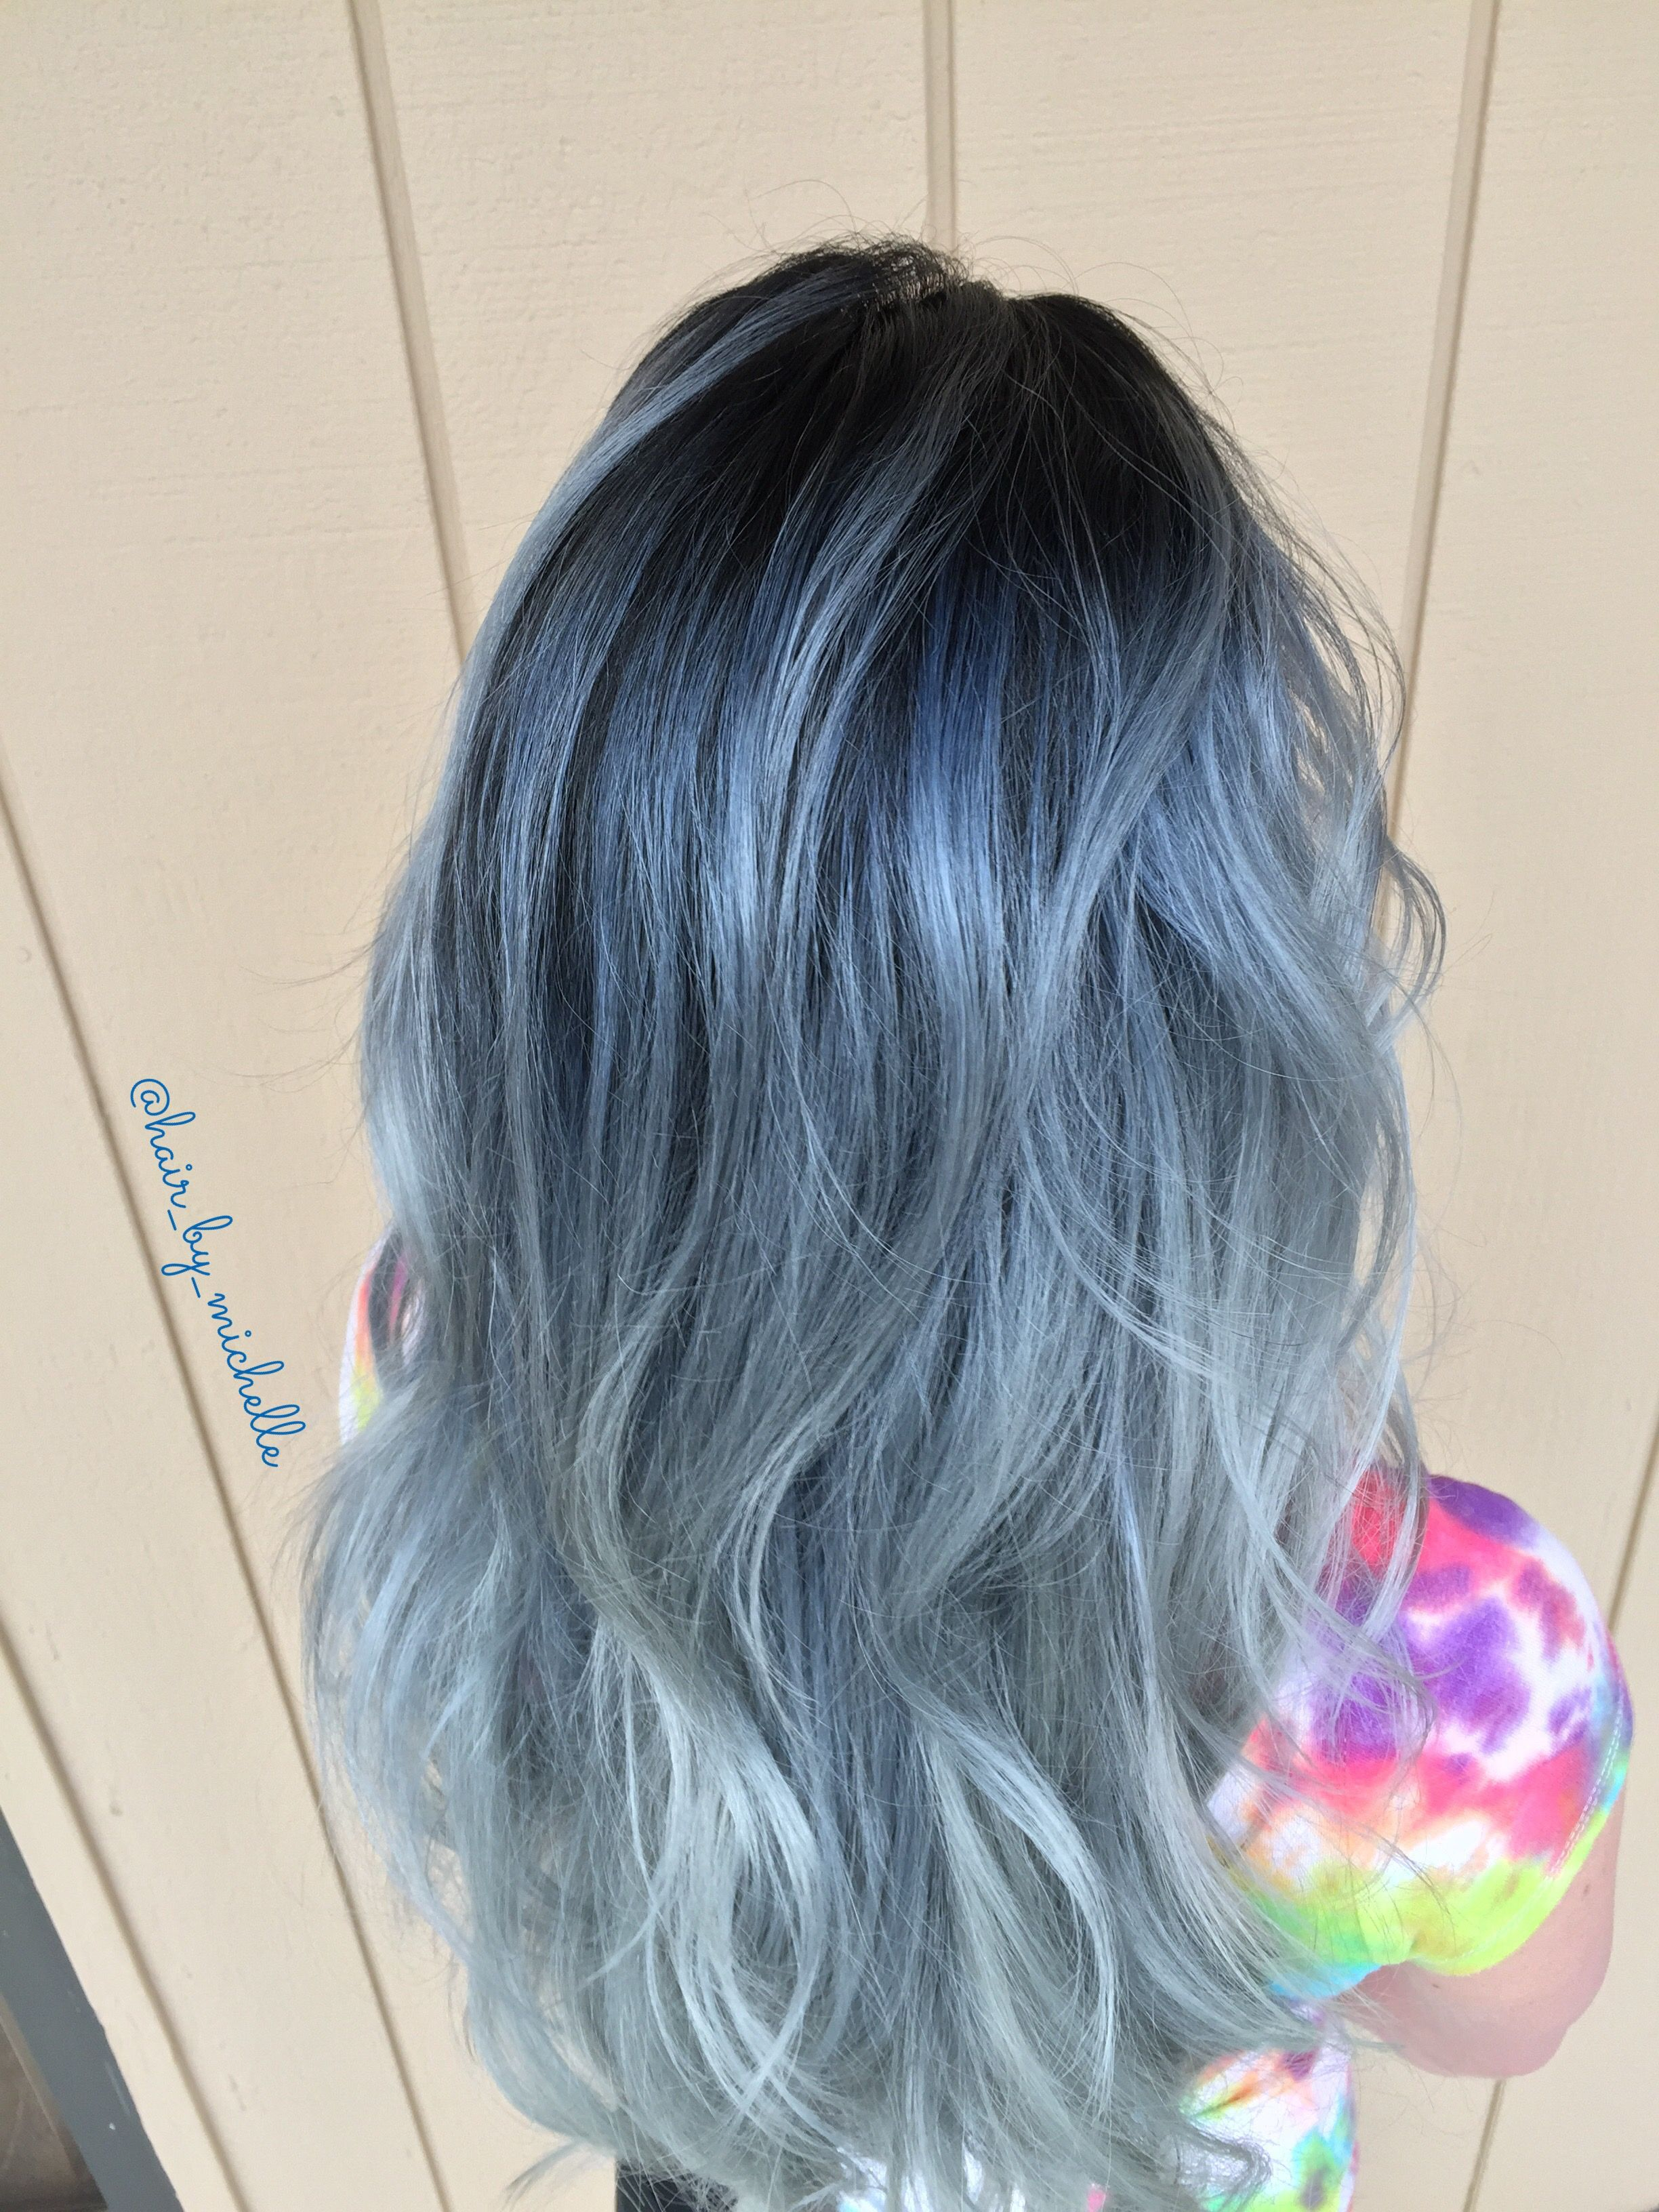 Denim Hair Blue And Silver Balayage Denim Hair Silver Blue Hair Hair Color Blue